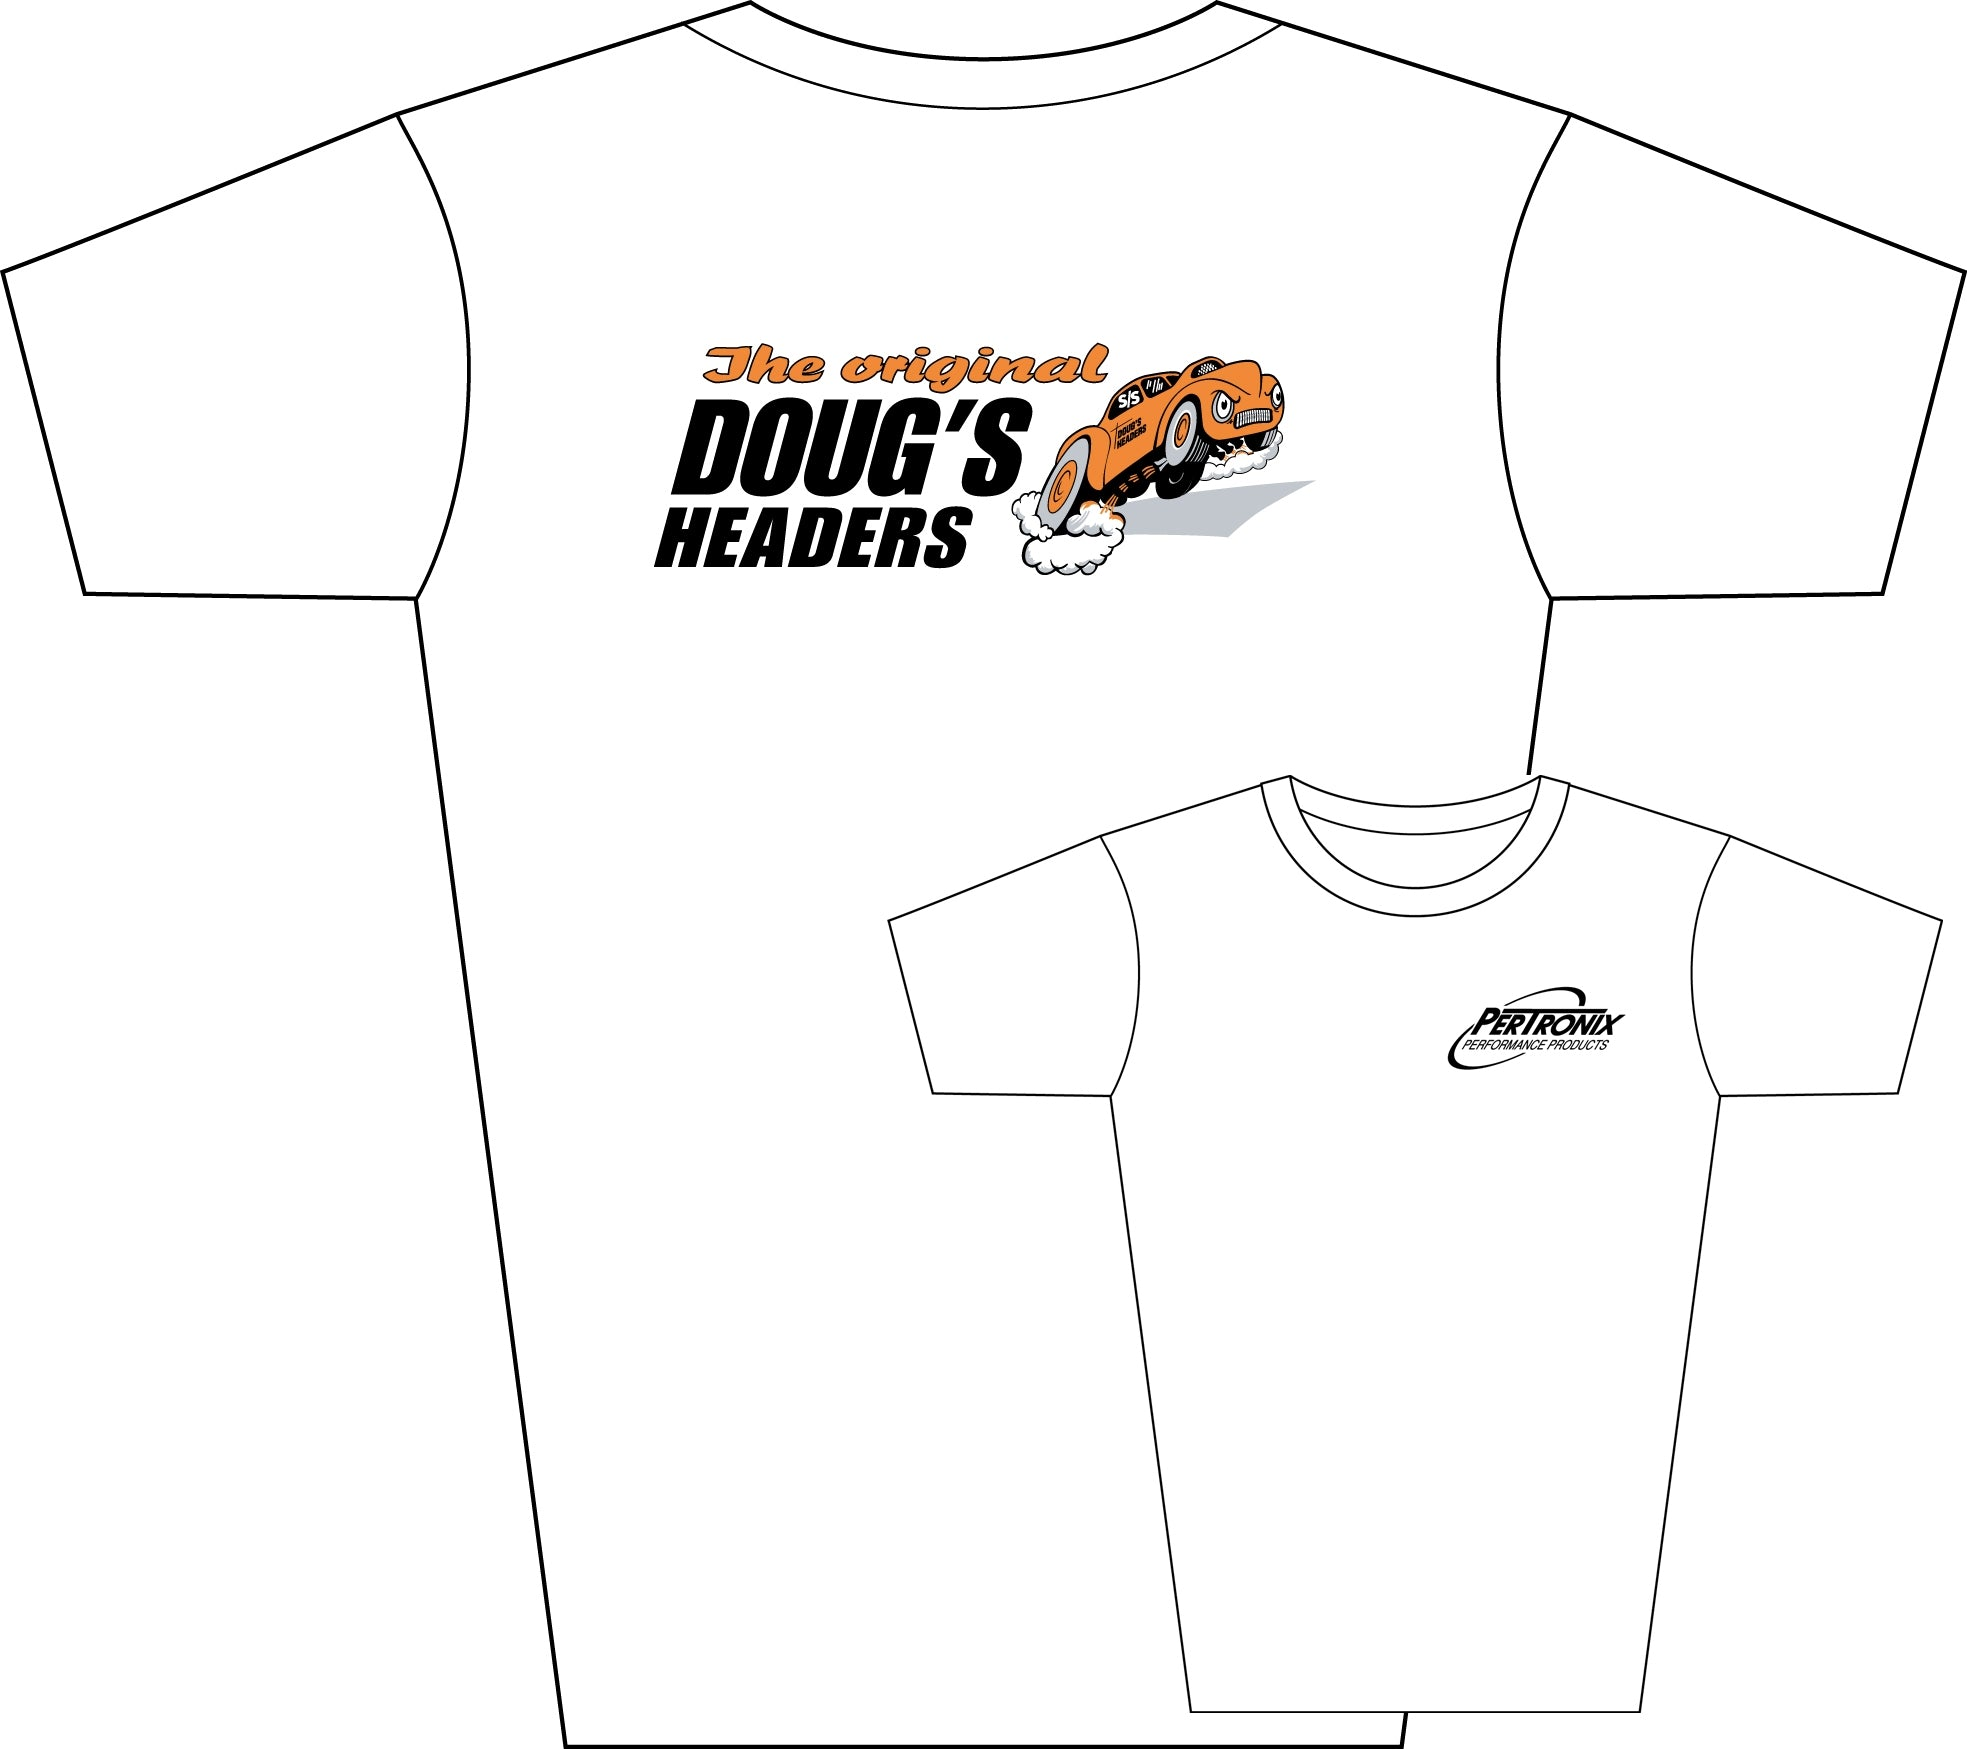 Doug's Headers TS102 Tee Shirt White Large